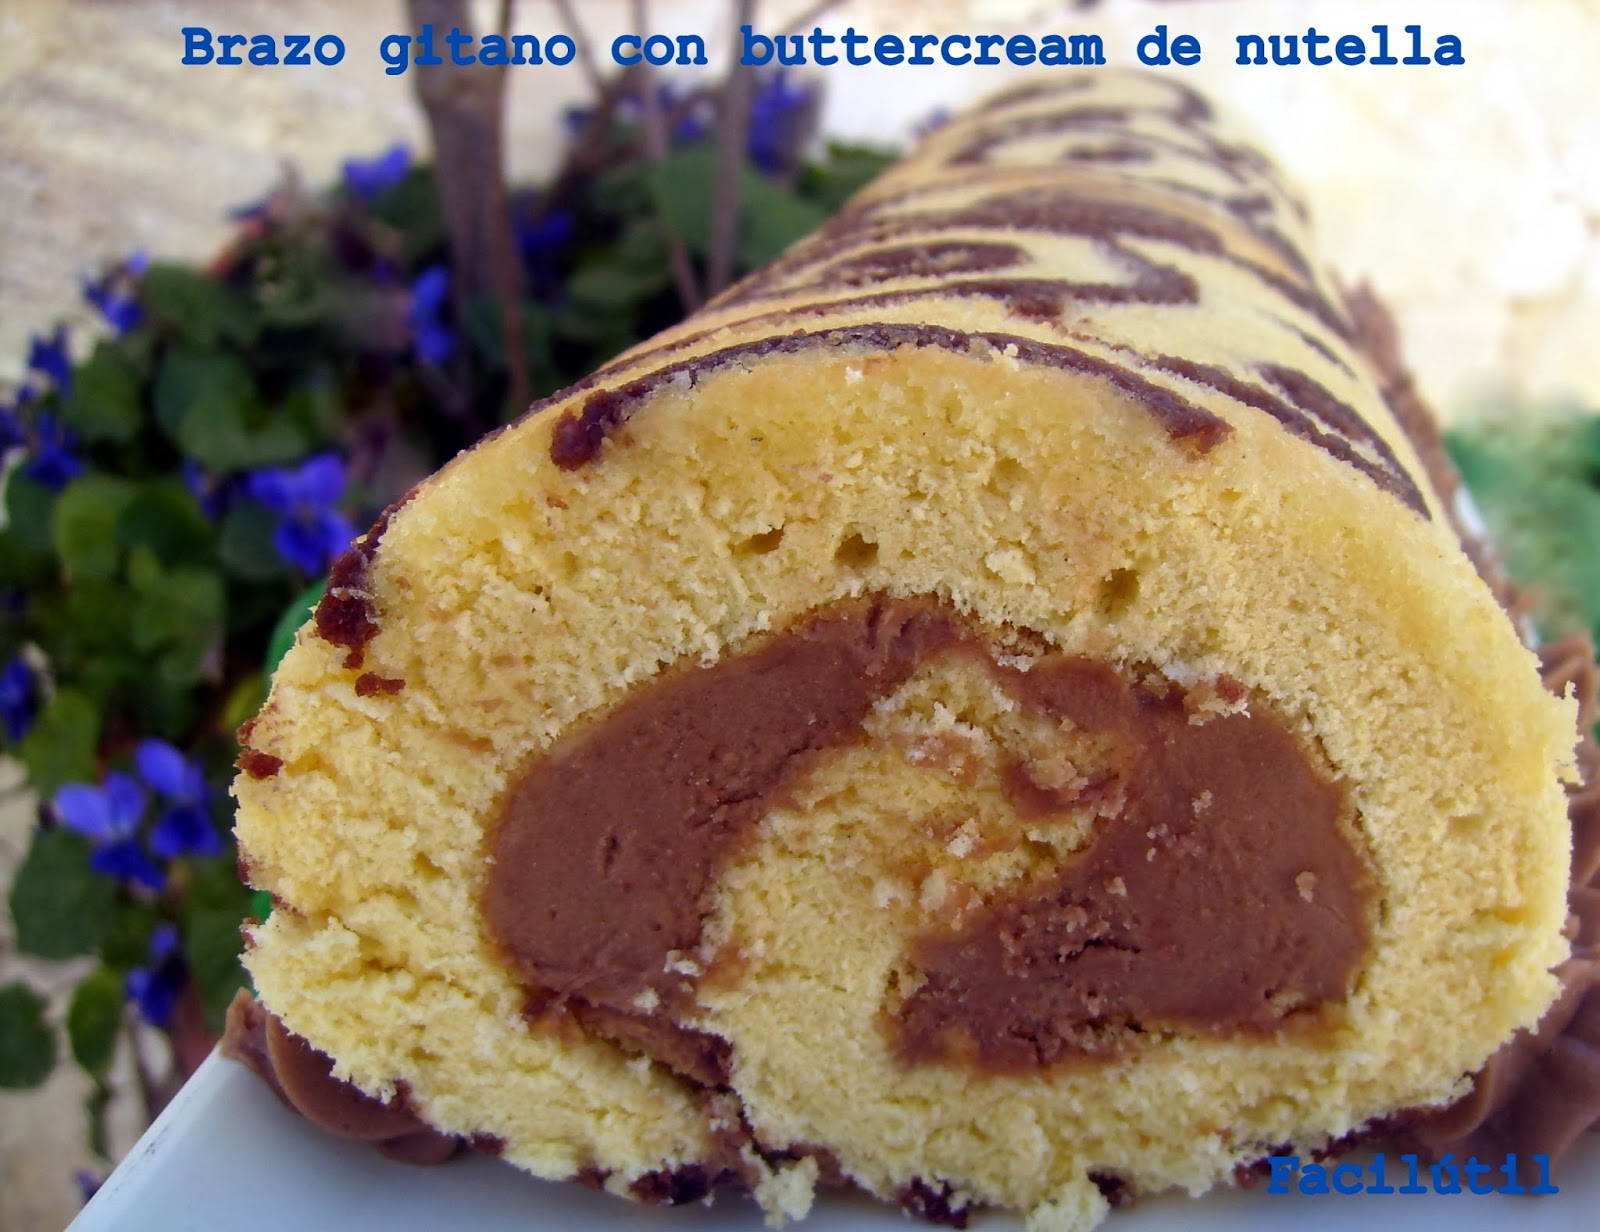 brazo-gitano-decorado-con-buttercream-de-nutella